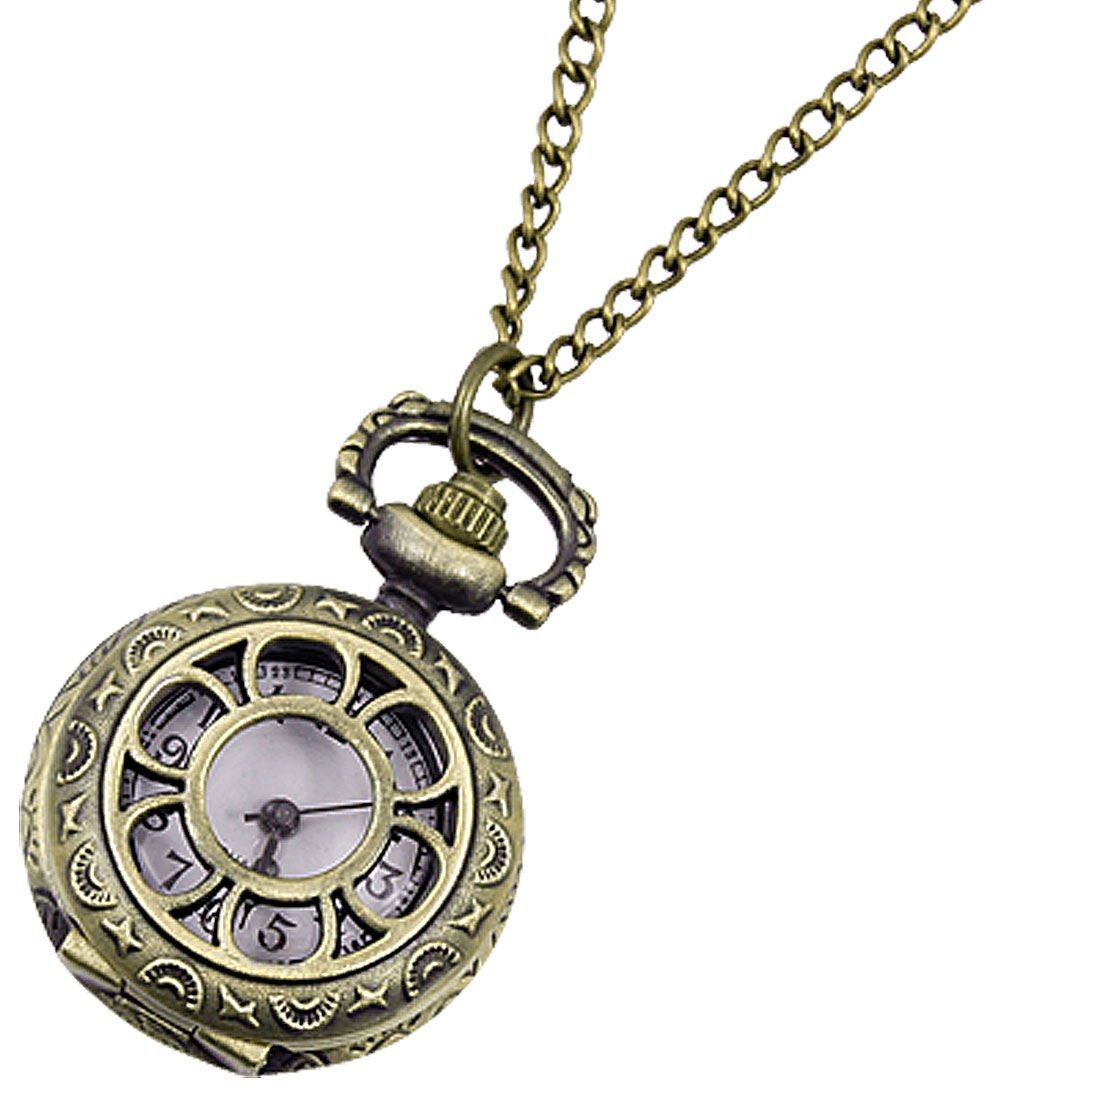 Floral Texture Bronze Tone Hunter Case Pocket Watch for Lady